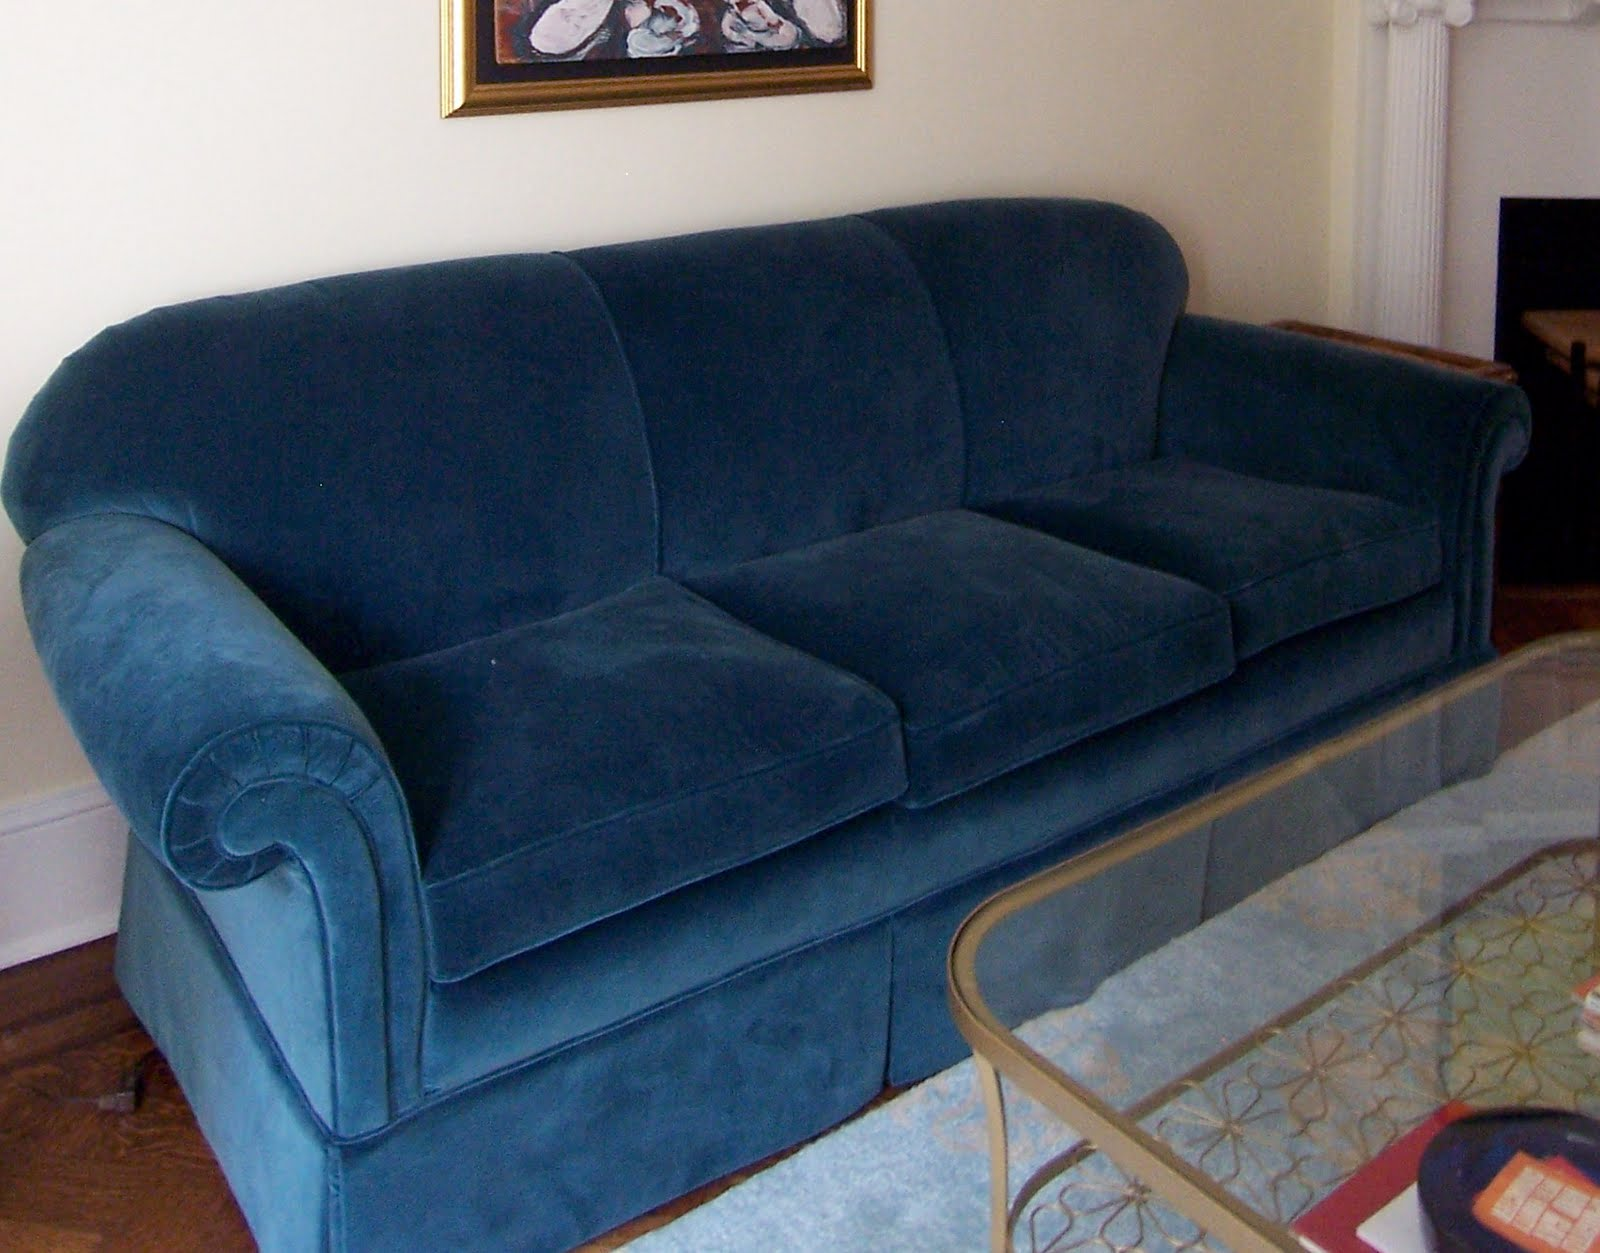 Reupholstering Furniture Is Expensive Bossy Color Annie Elliott